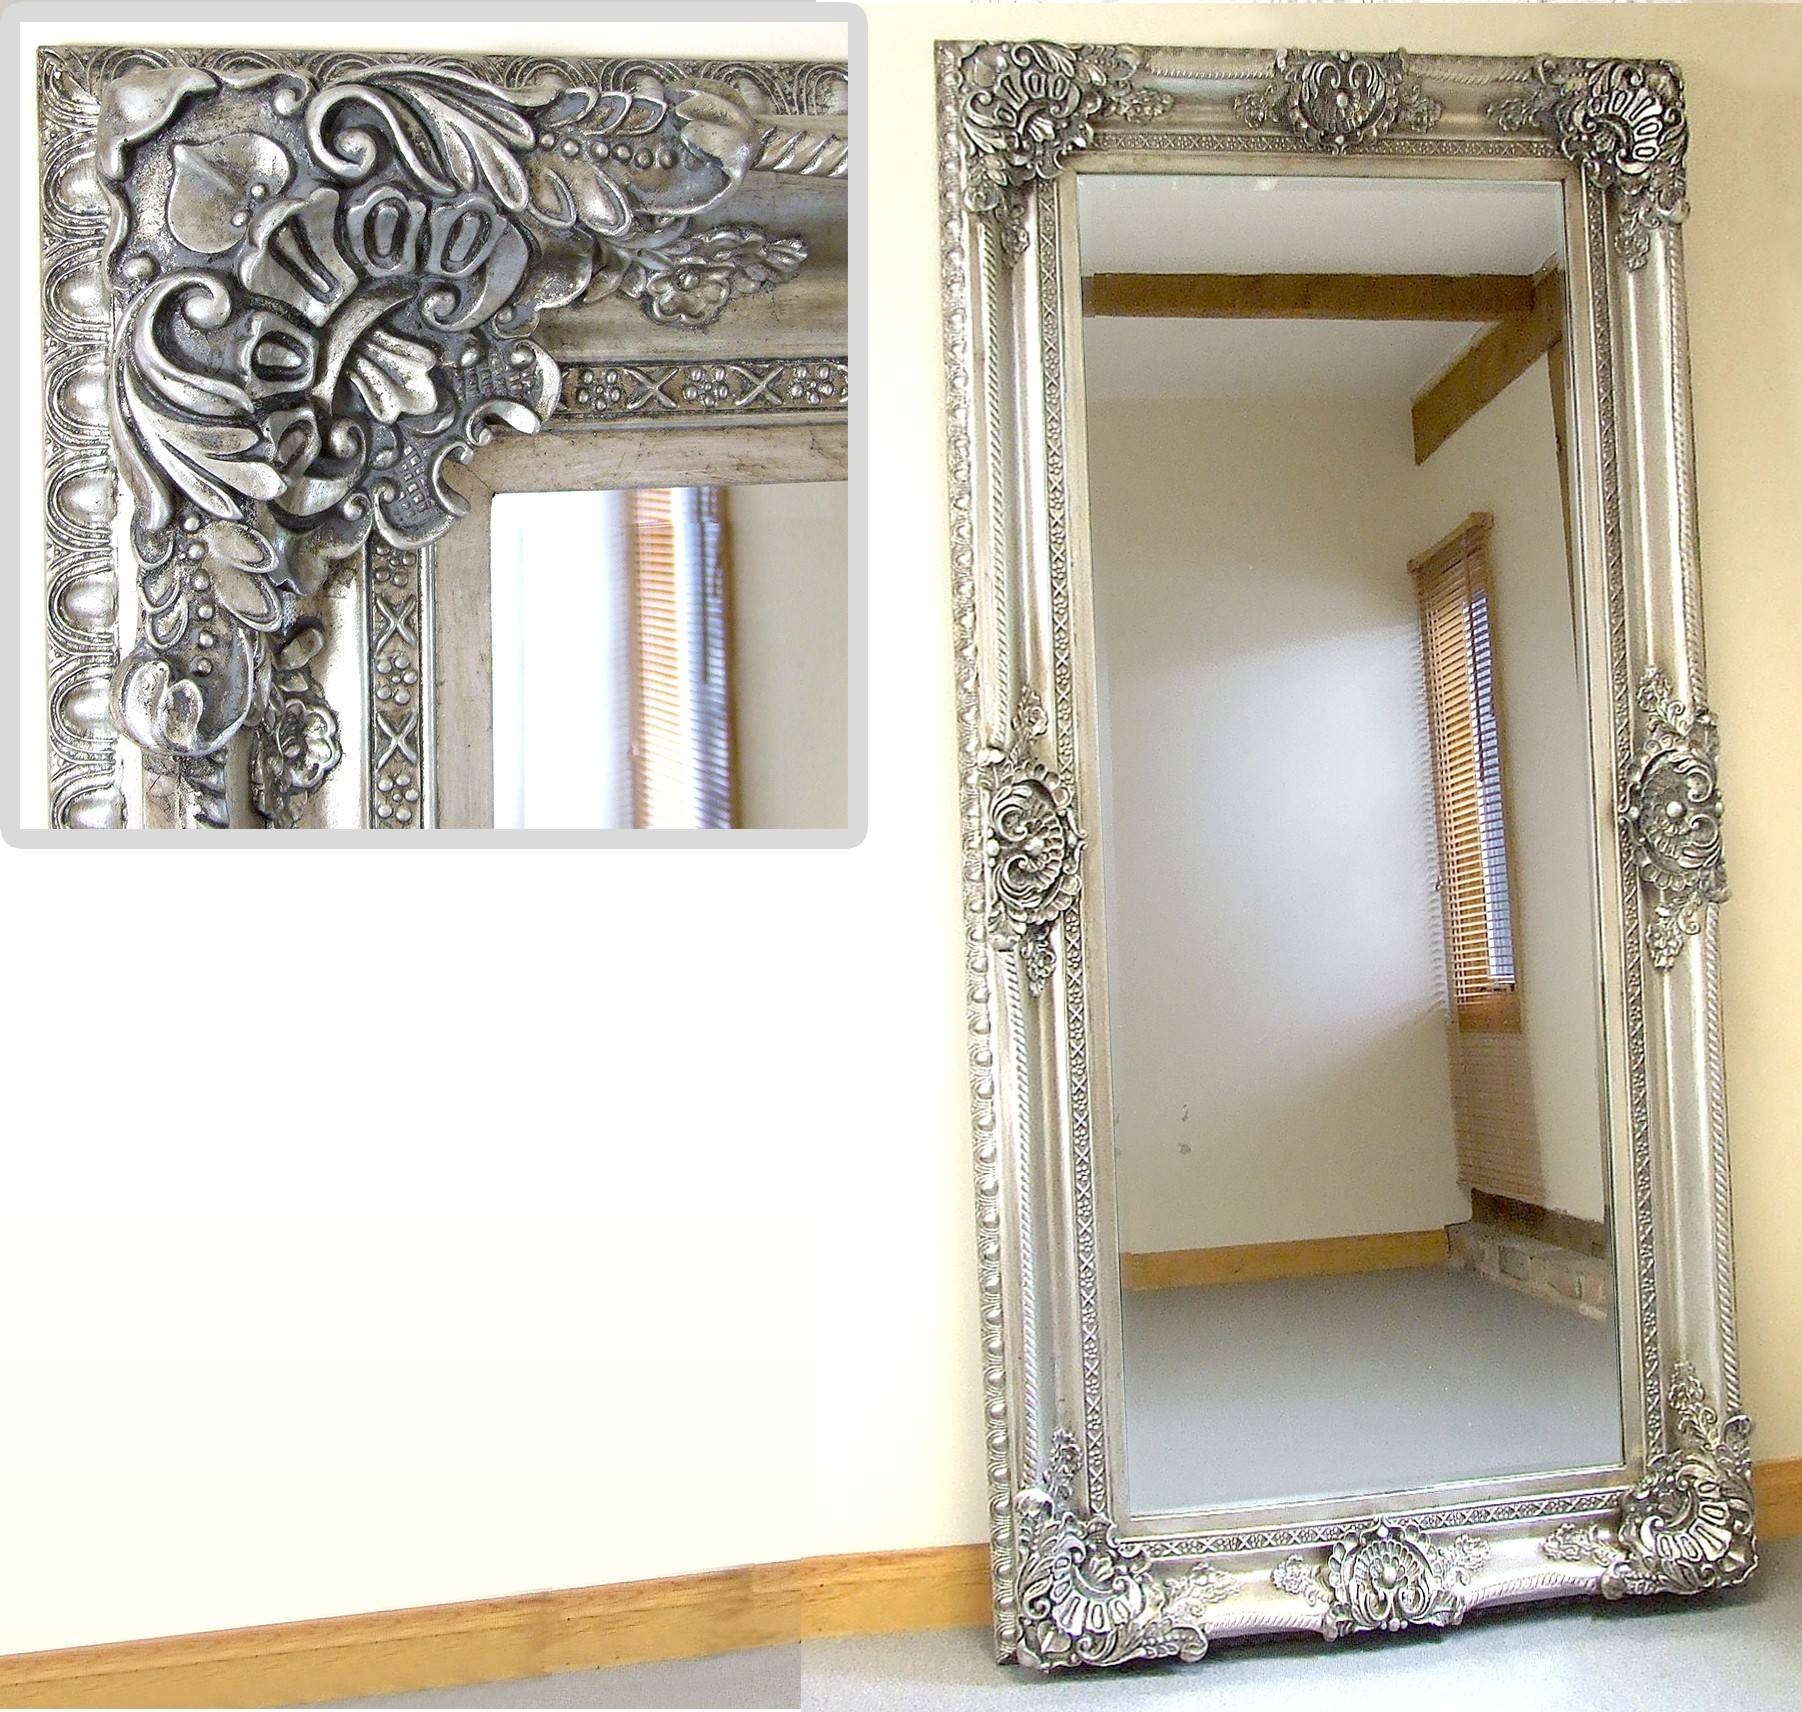 Full Length Silver Mirror 40 Unique Decoration And Ornate Full intended for Silver Ornate Wall Mirrors (Image 11 of 25)